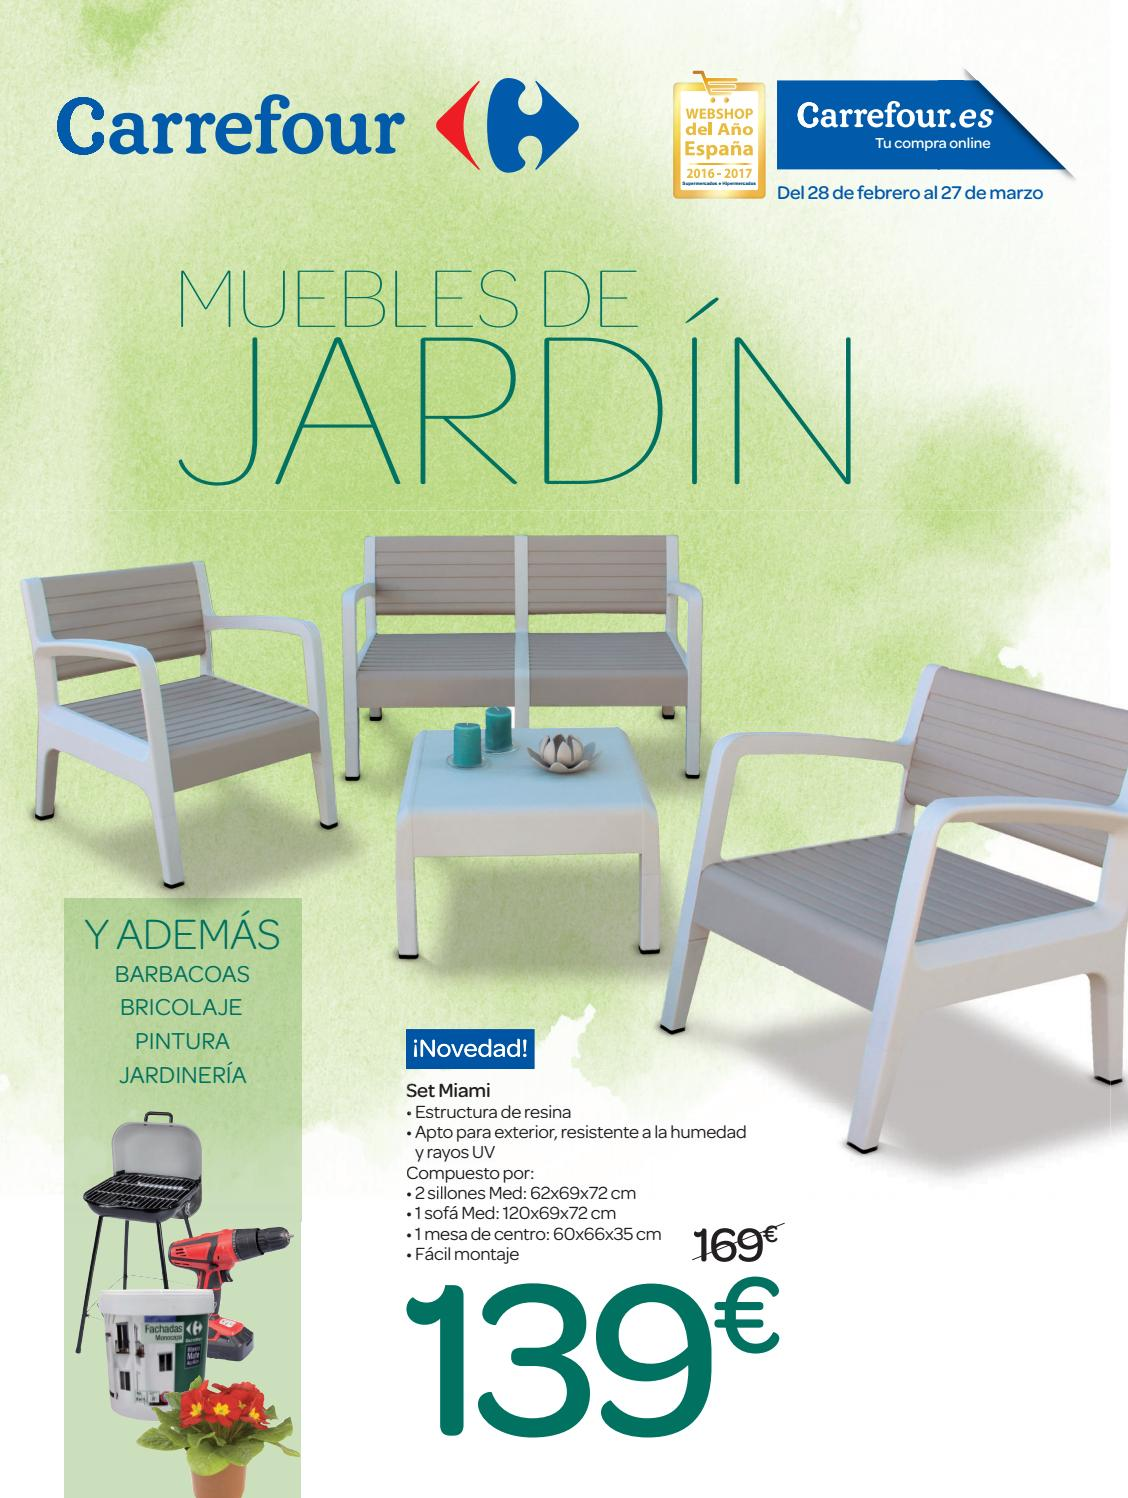 Muebles de jardin carrefour by ofertas supermercados issuu for Muebles jardin alcampo online